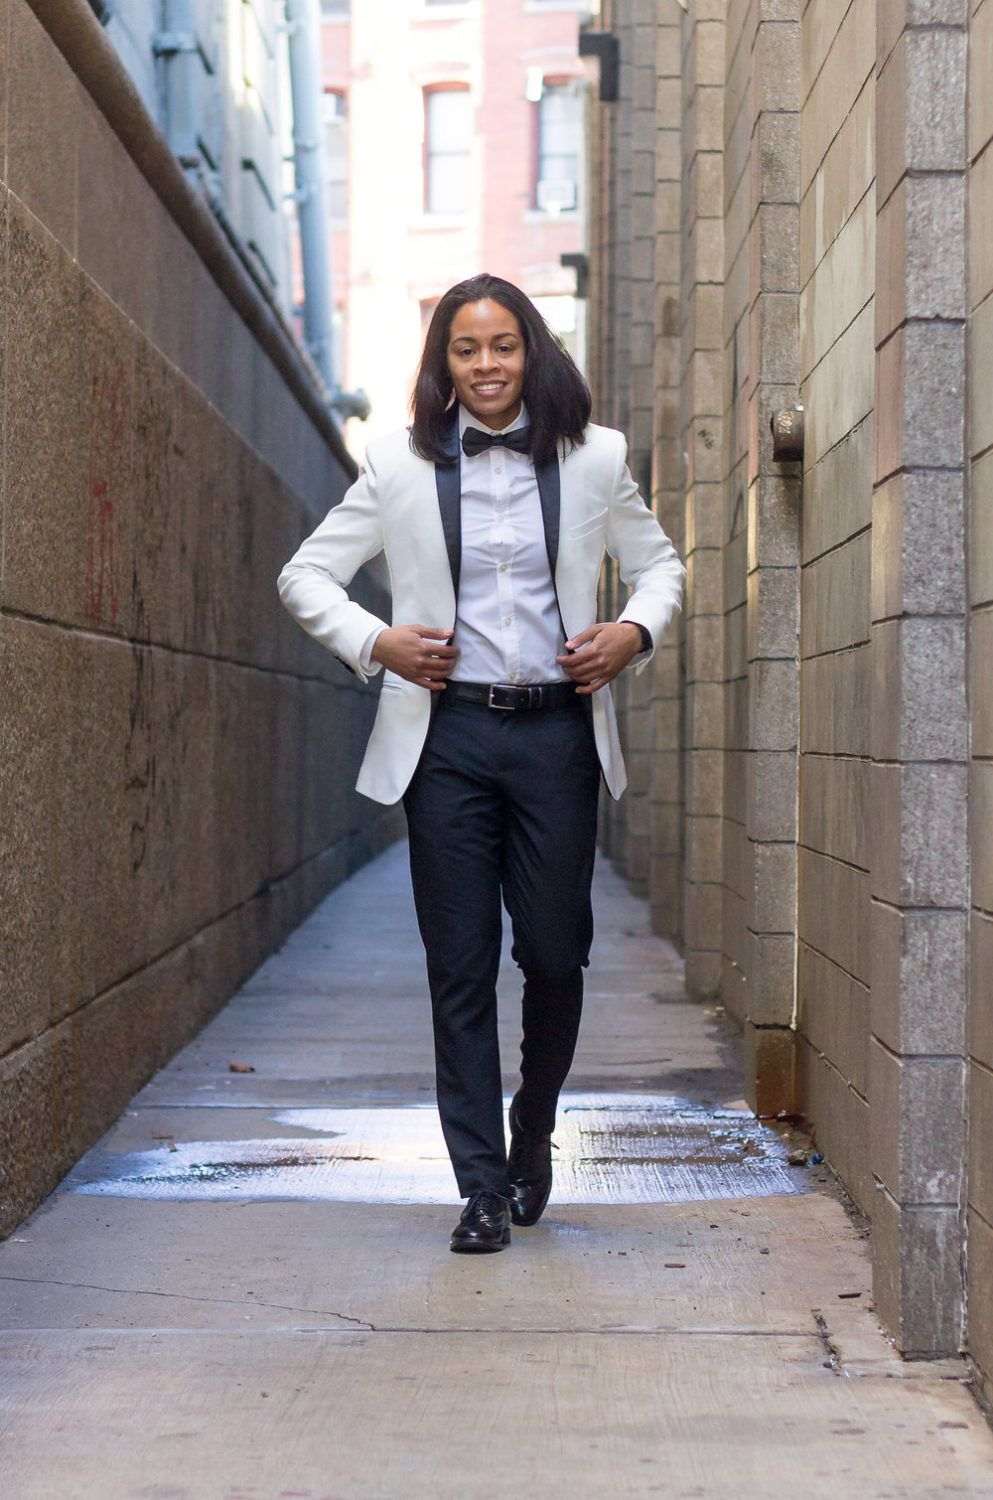 Classic Look for New Years Eve | Women suits wedding ...